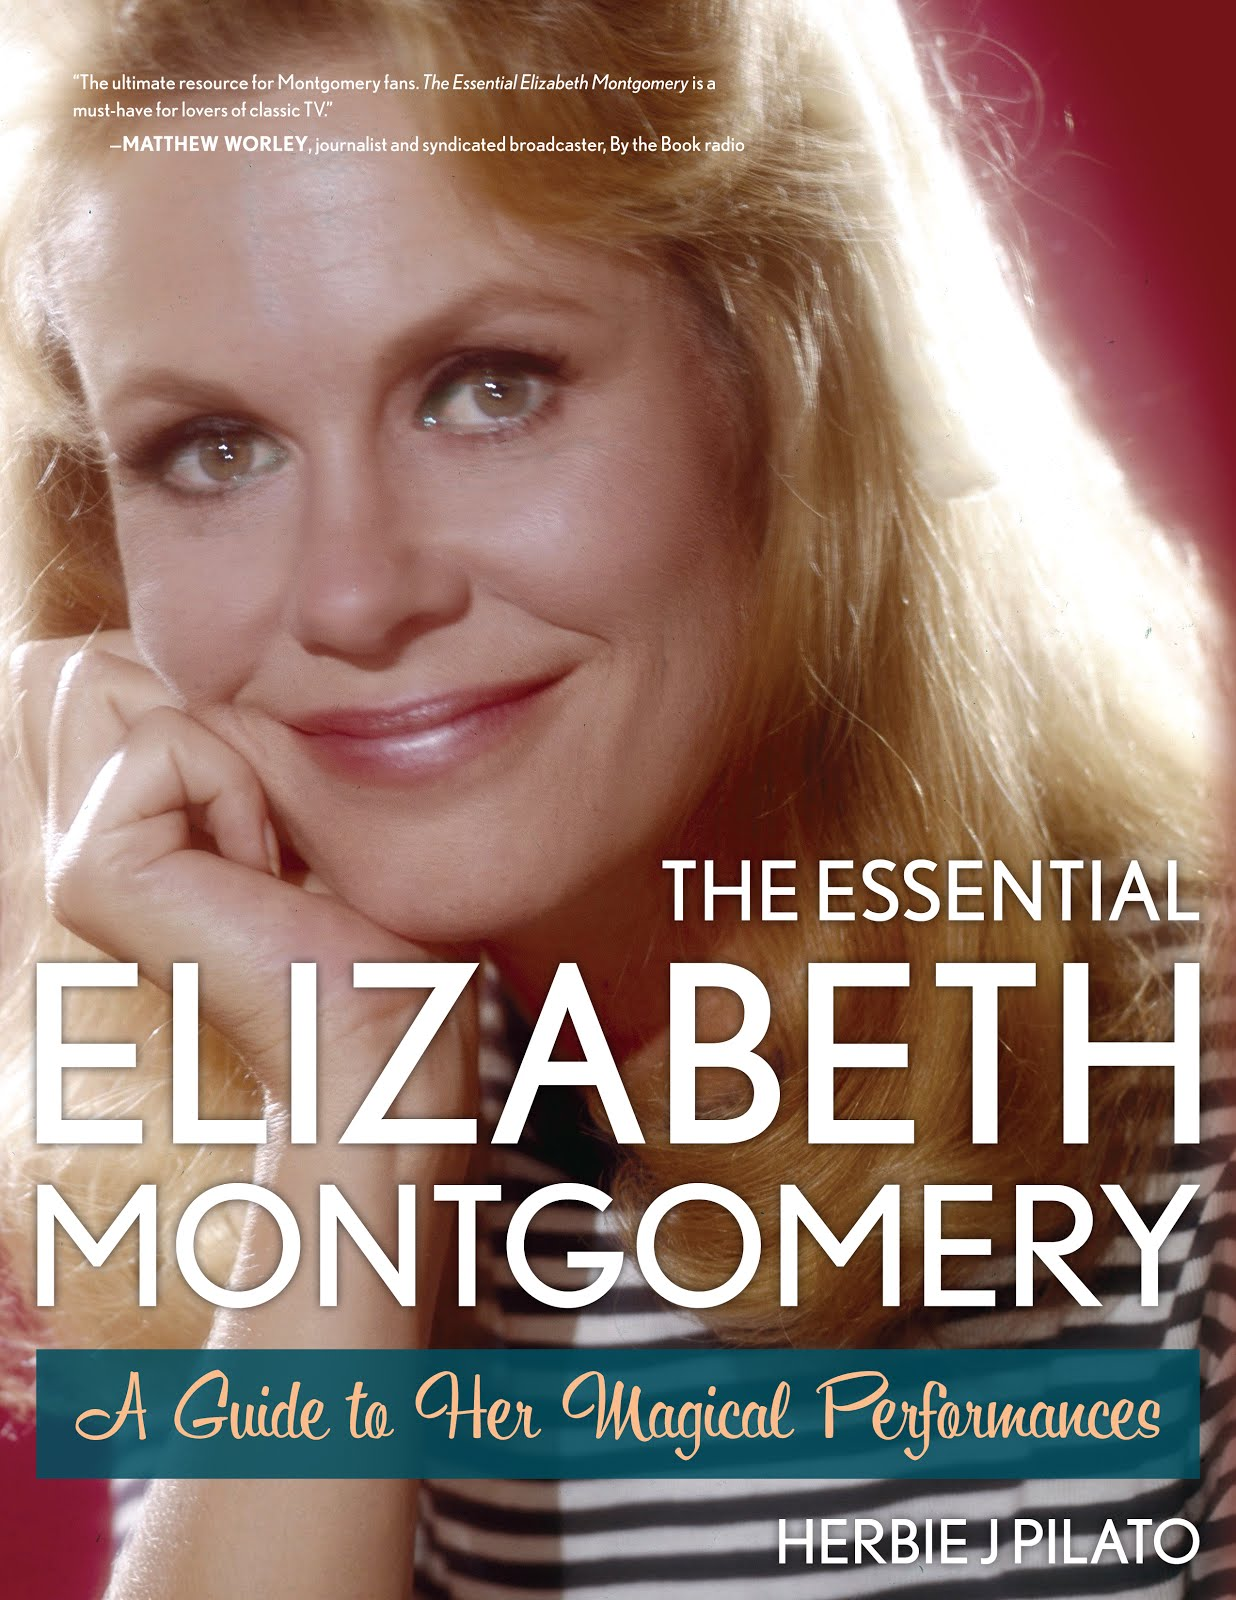 One FREE COPY of The Essential Elizabeth Montgomery...